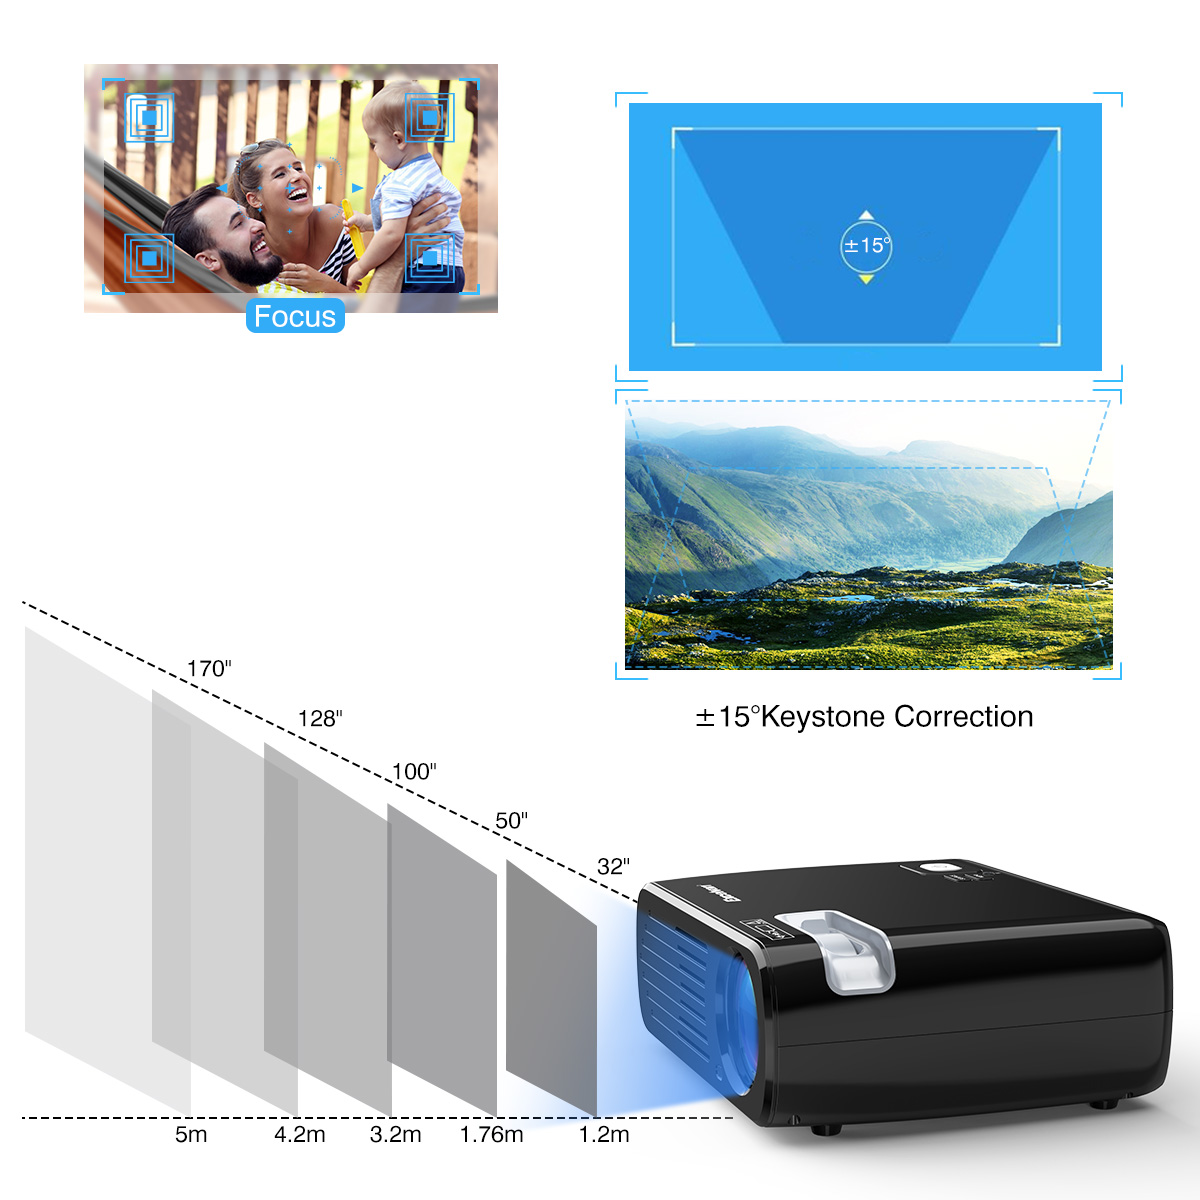 Details about 7000Lumens 1080P Full HD 3D LED LCD Micro Projector Home  Theater HDMI VGA USB US